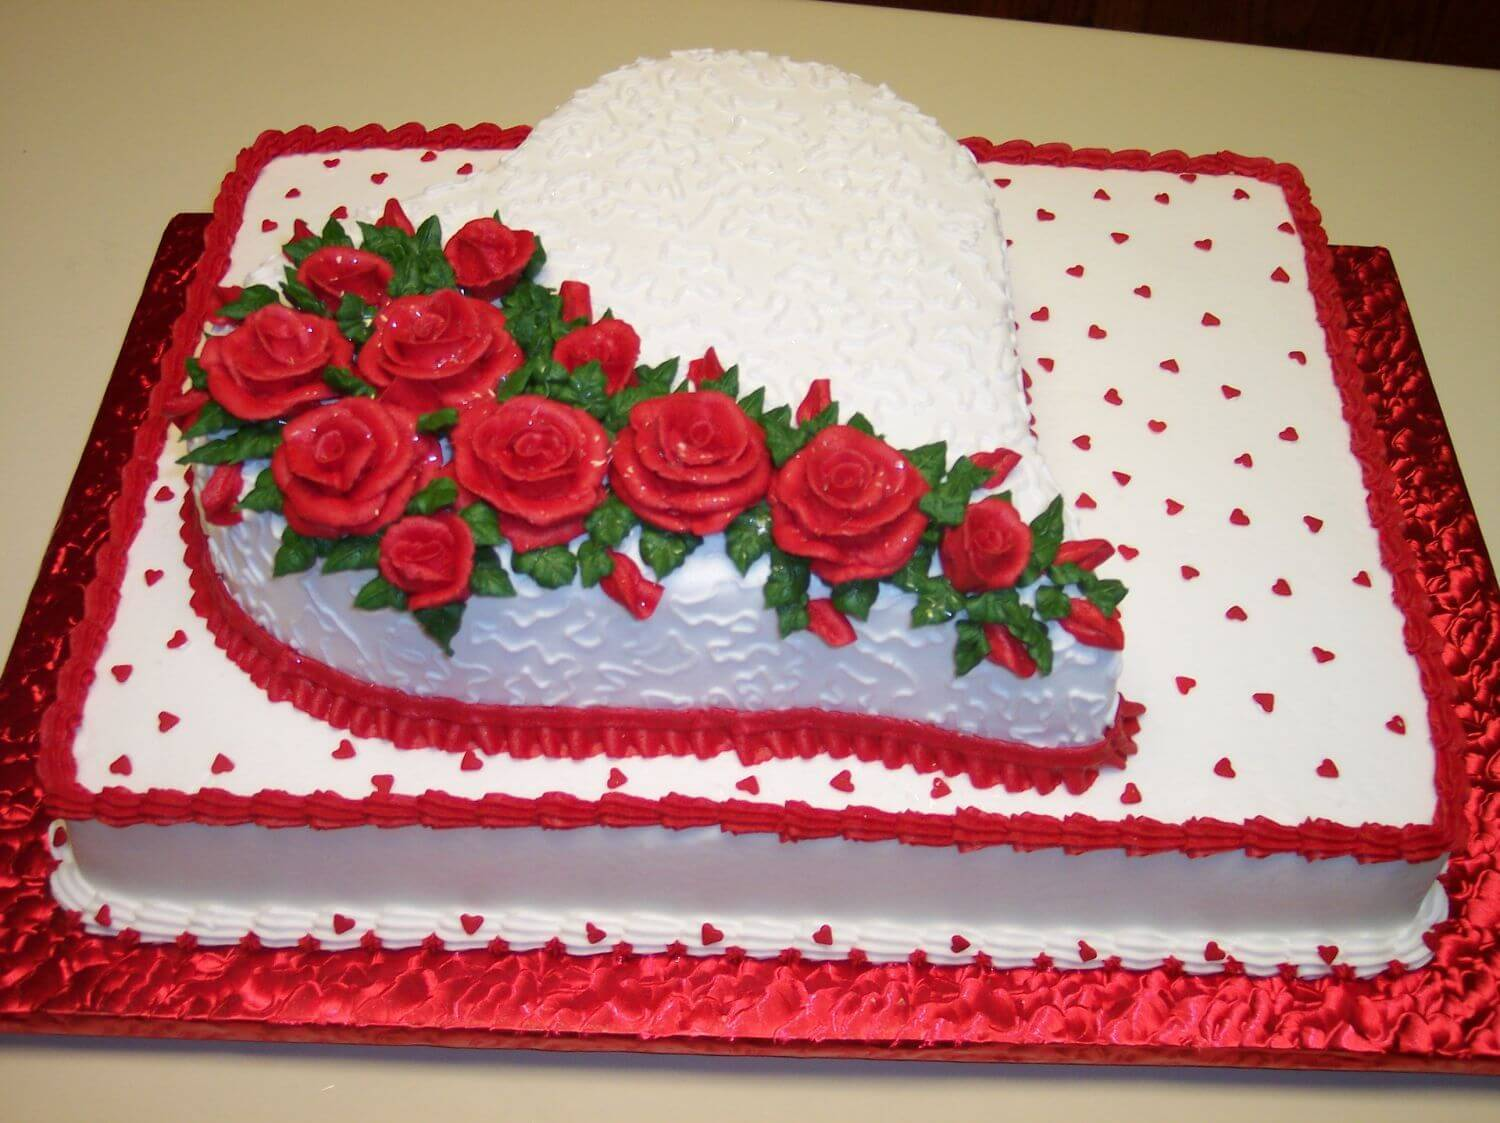 Cake Decoration Ideas for Valentine's Day